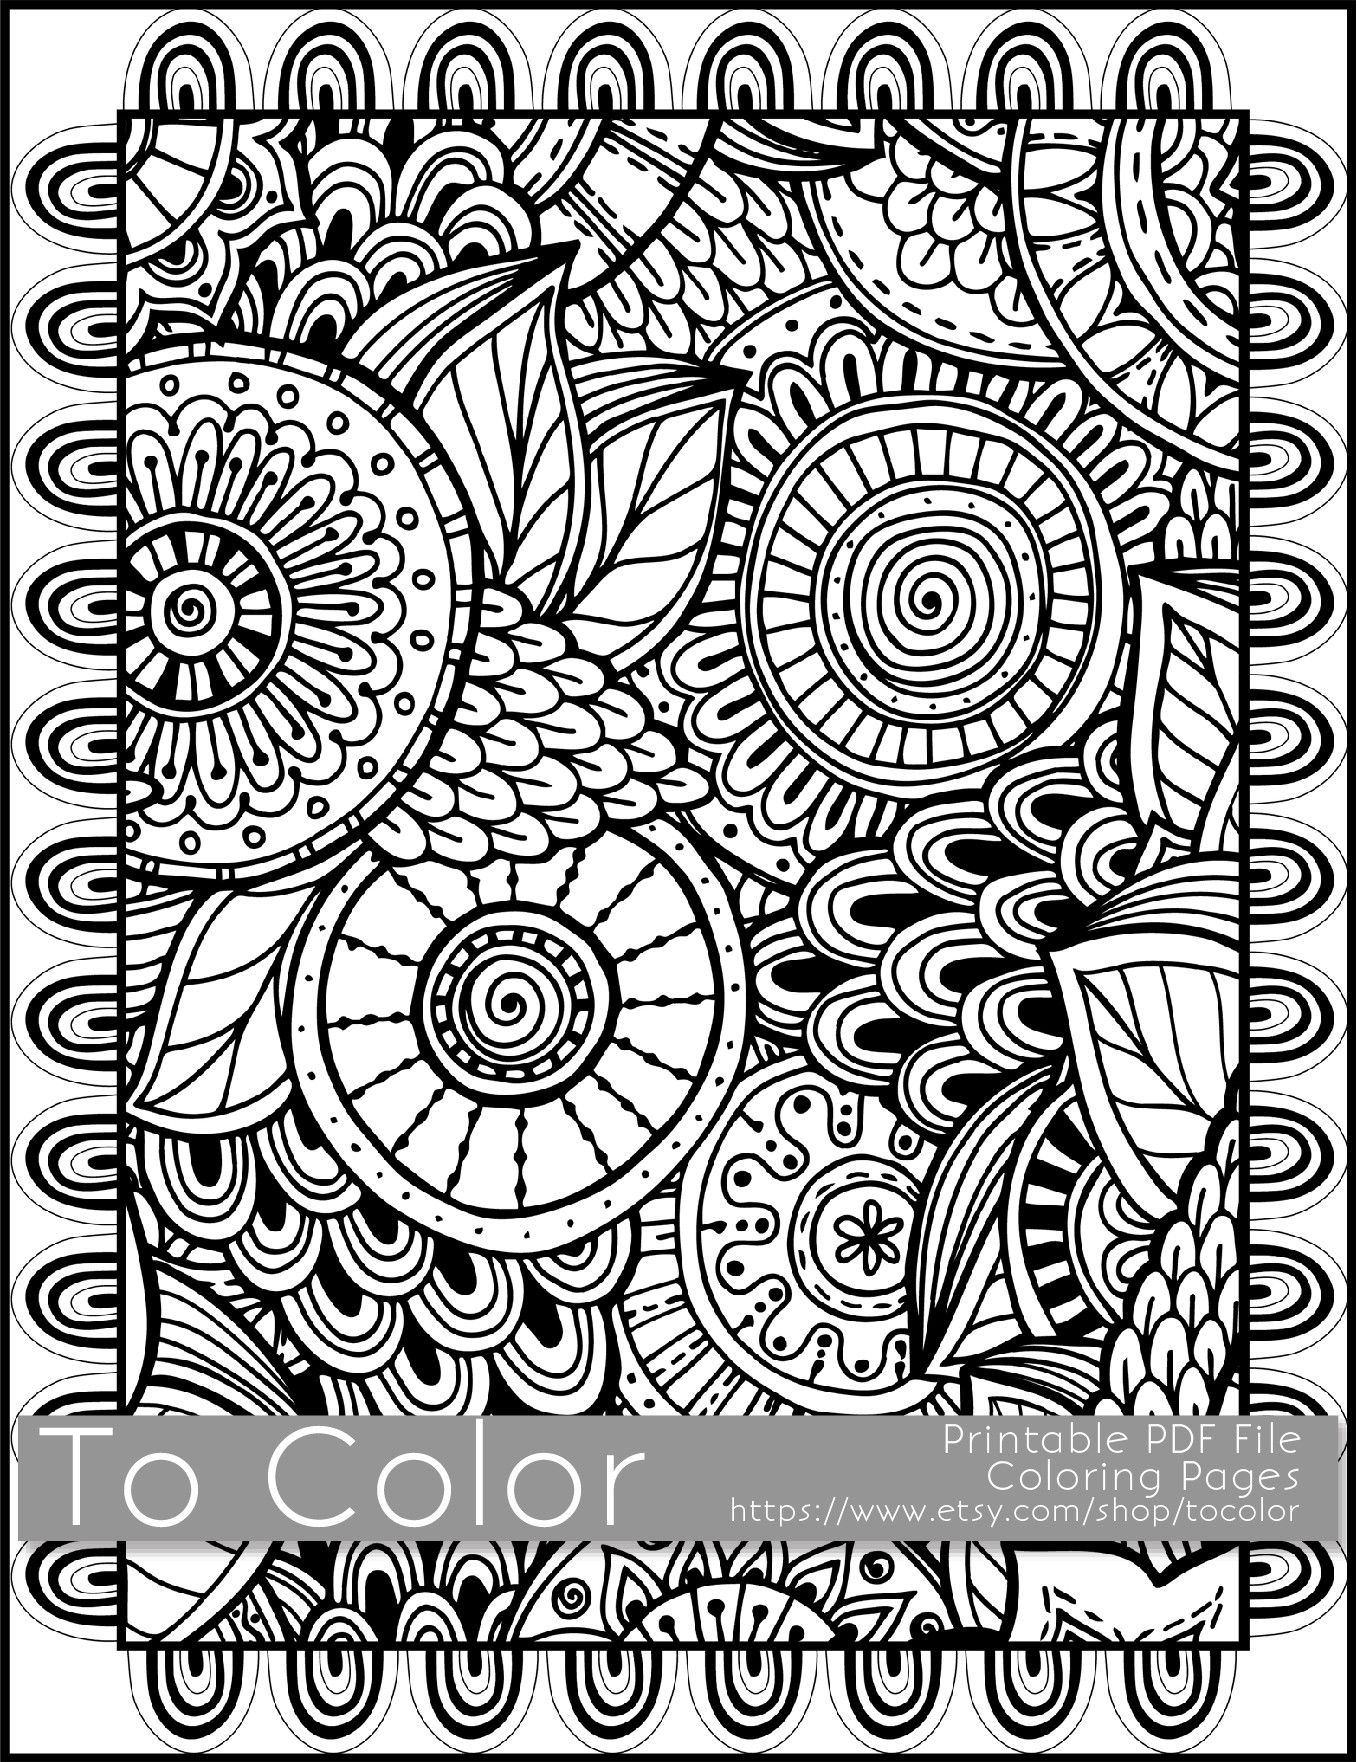 This is a printable PDF coloring page from To Color featuring an ...